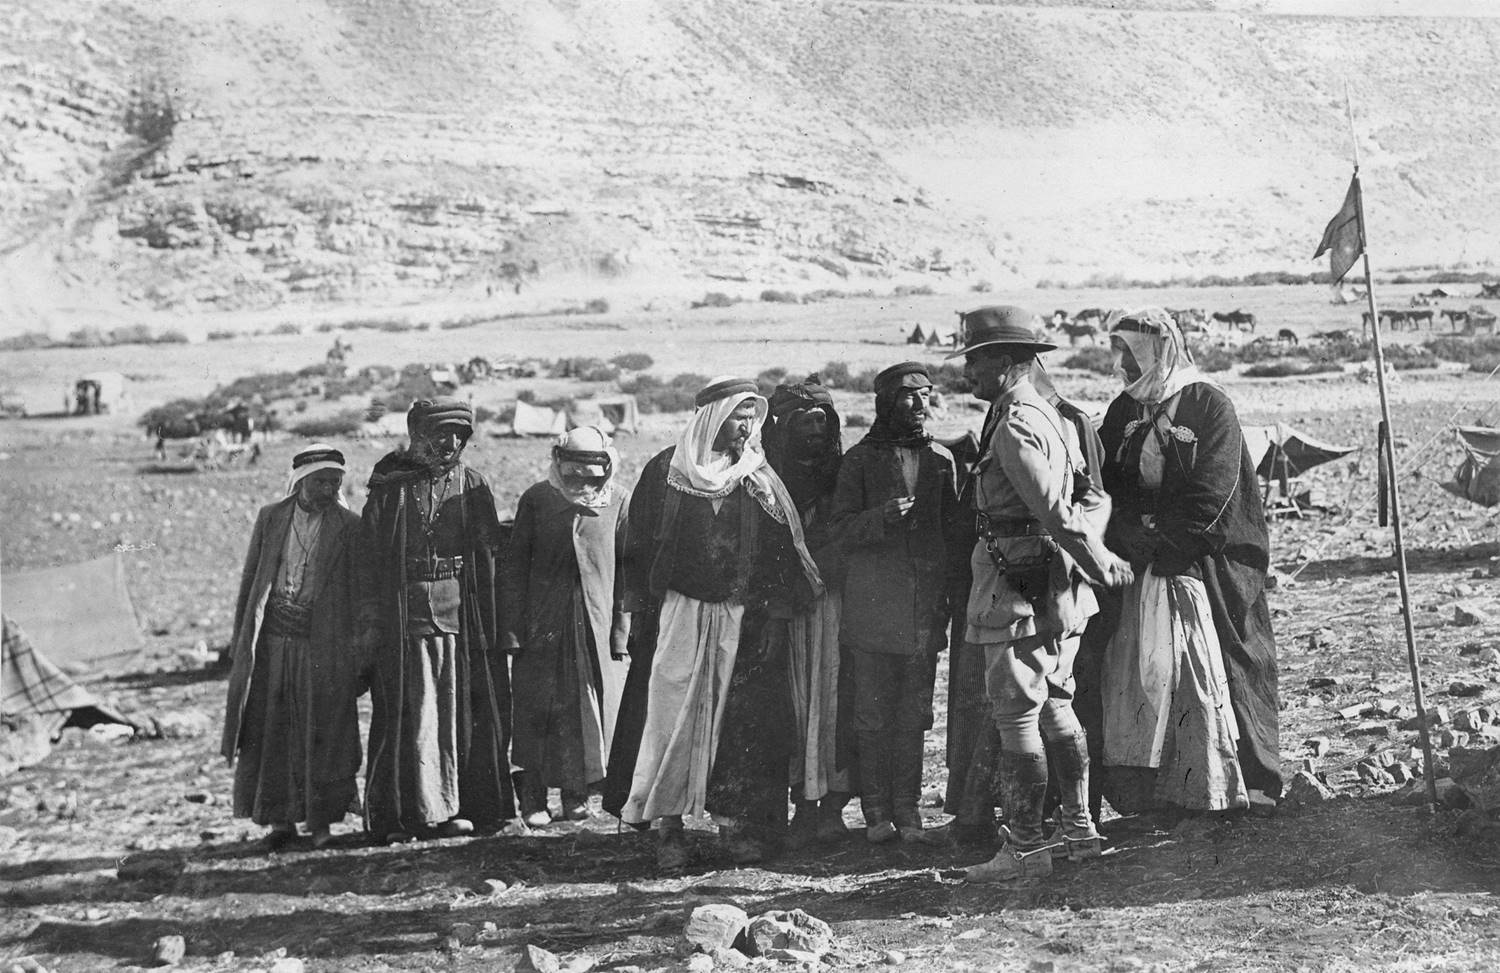 Australian solider talking with a group of Arabs in Palestine, 1918. [Photo with permission from State Library of South Australia, PRG280/1/15/1072.]